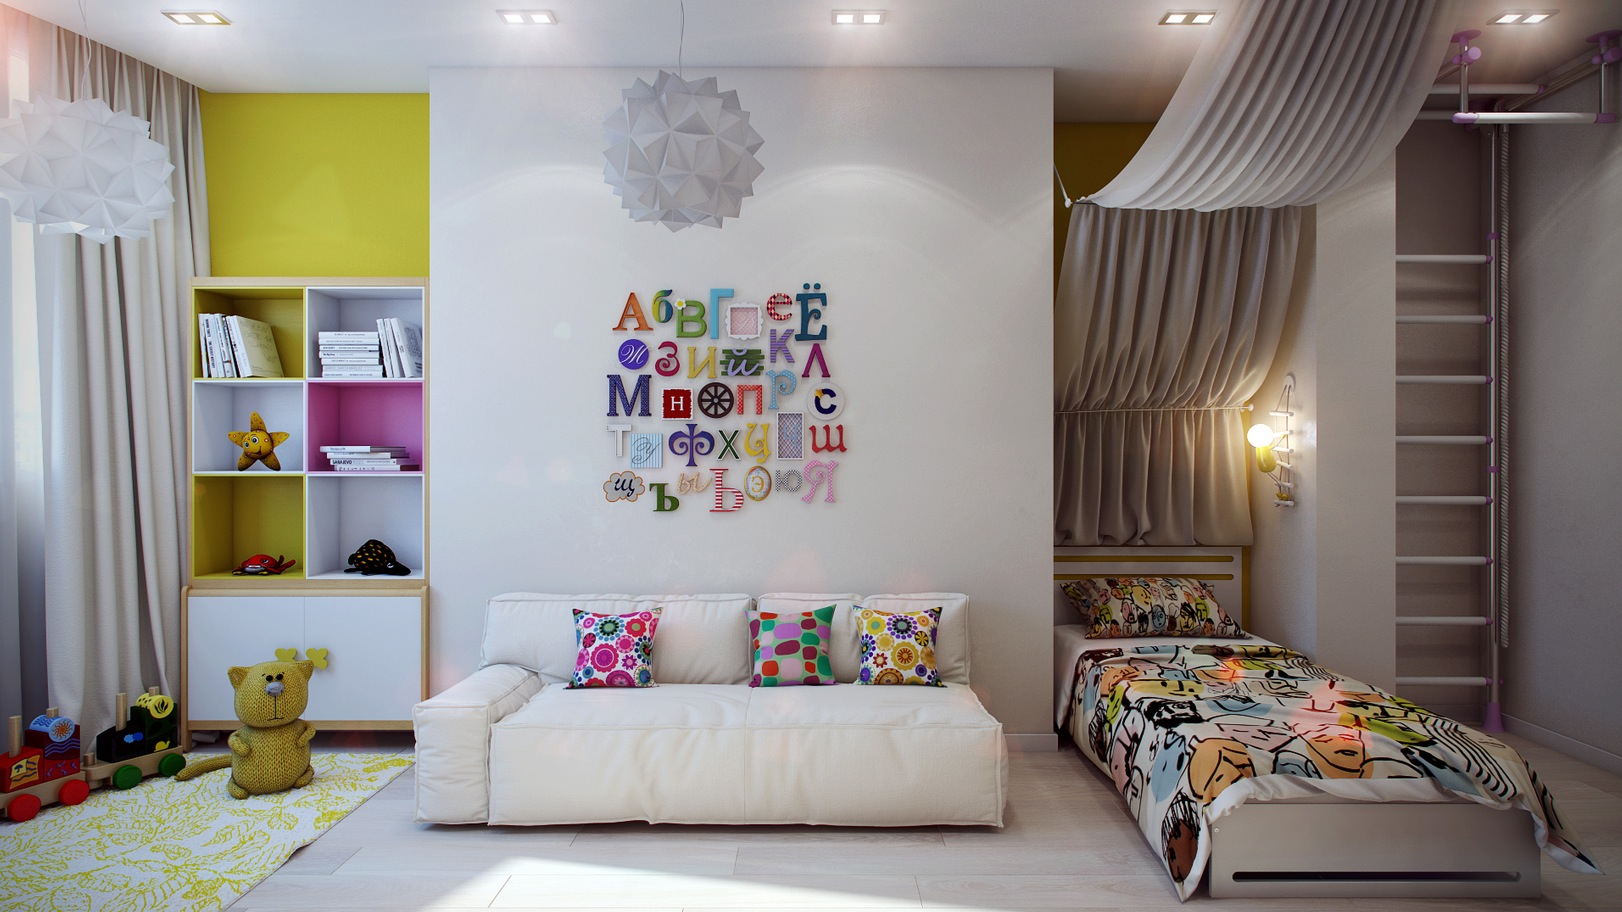 Casting color over kids rooms - Colors for kids room ...